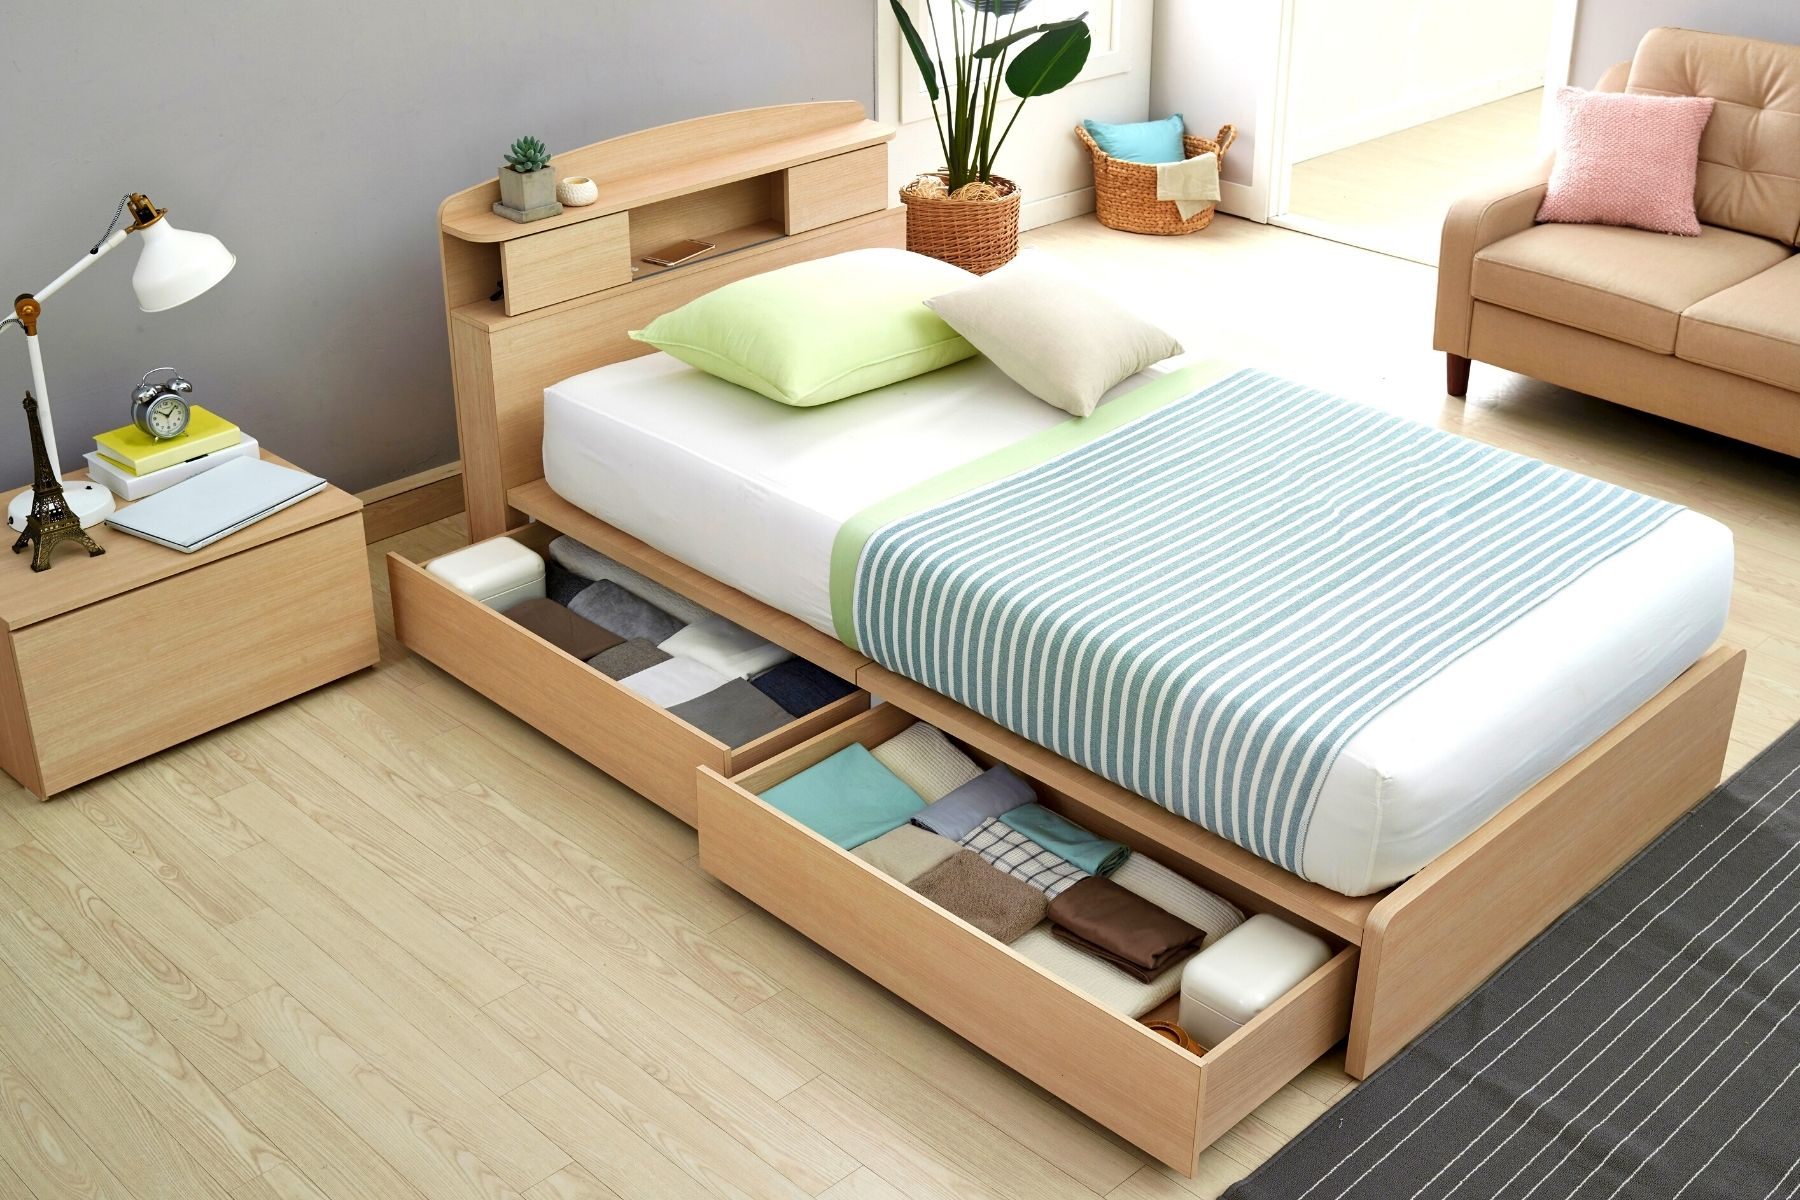 HappyFresh_Best_Idea_To_Decorate_Your_Small_Bedroom_Drawer